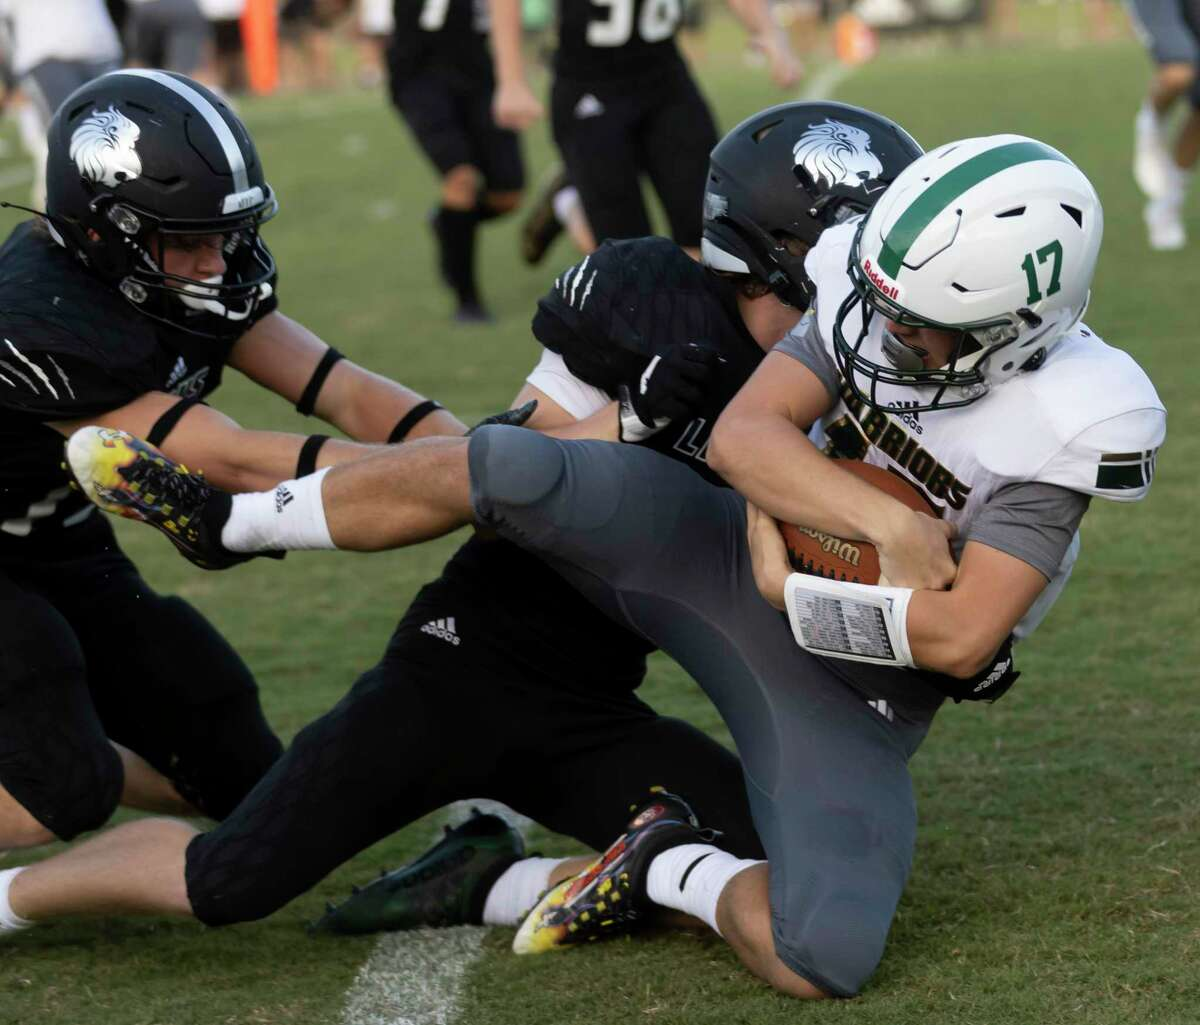 The Woodlands Christian Academy quarterback Josh Johnson (17) is brought down by Legacy Prep Christian Academy's defense during the first quarter of a non-district football game at Holcomb Family Field, Friday, Aug. 27, 2021, in Magnolia.